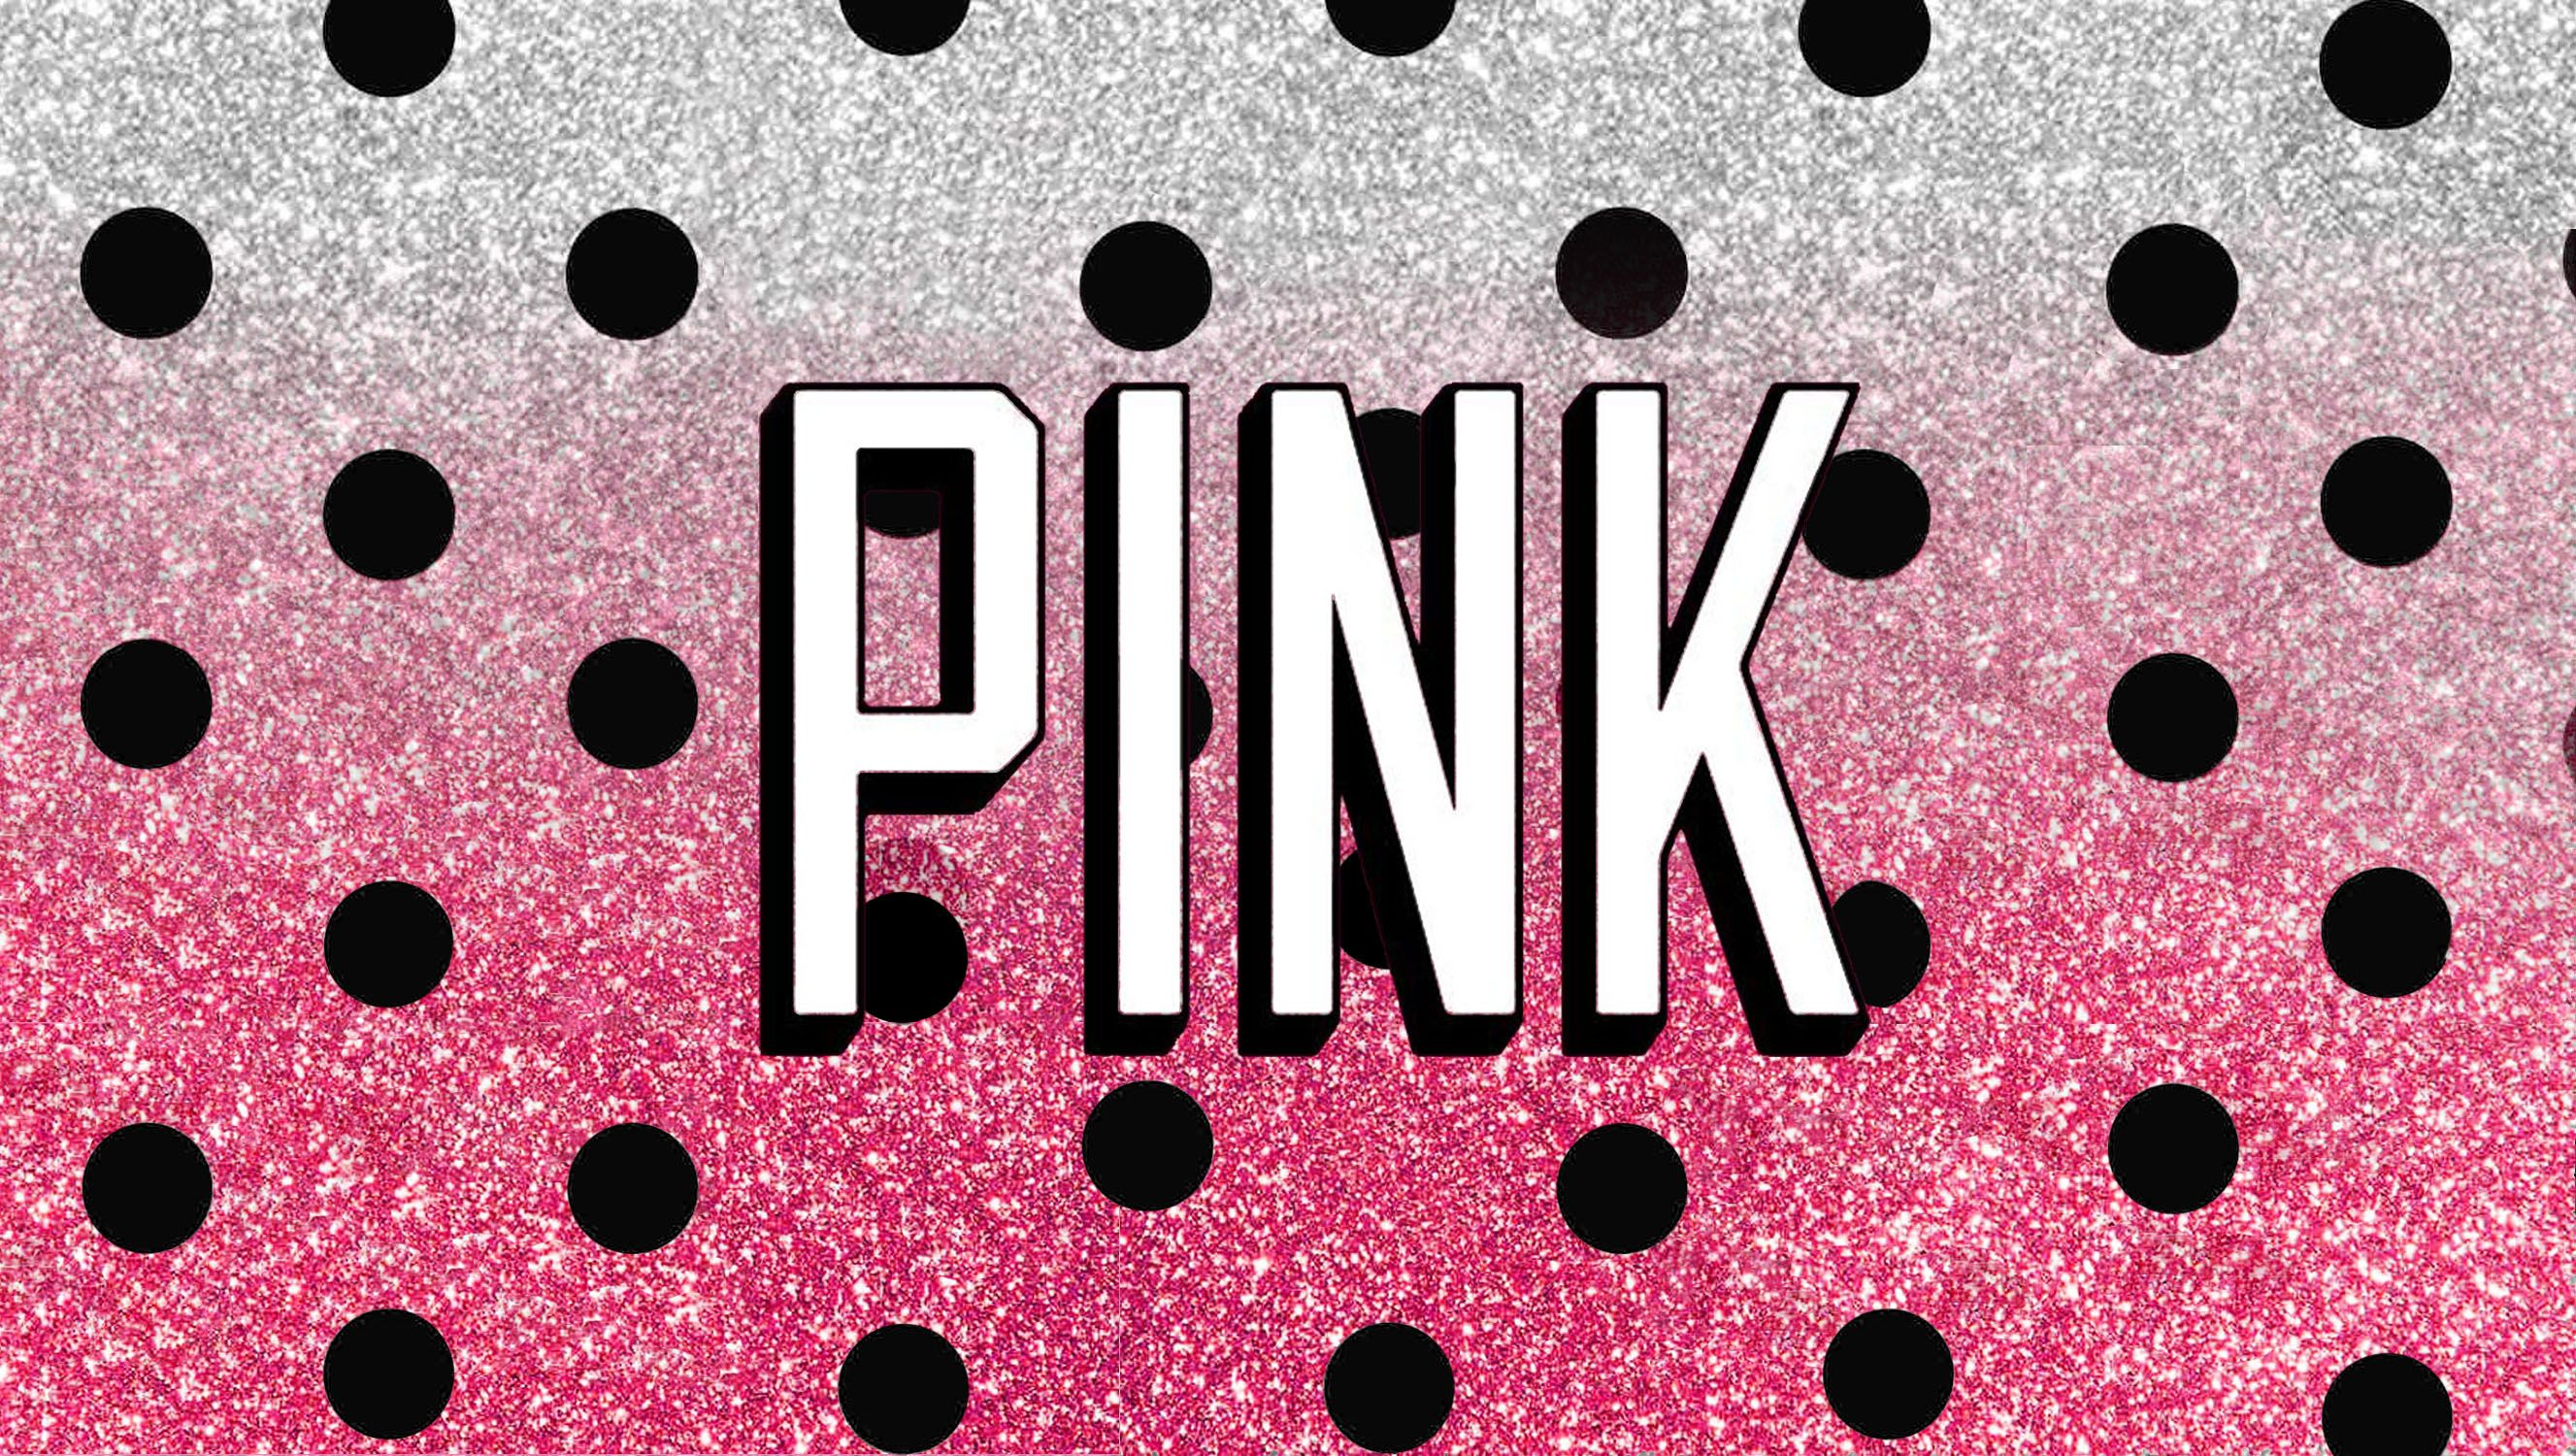 Victoria secret love pink background pink galaxy for Victoria secret wallpaper for room